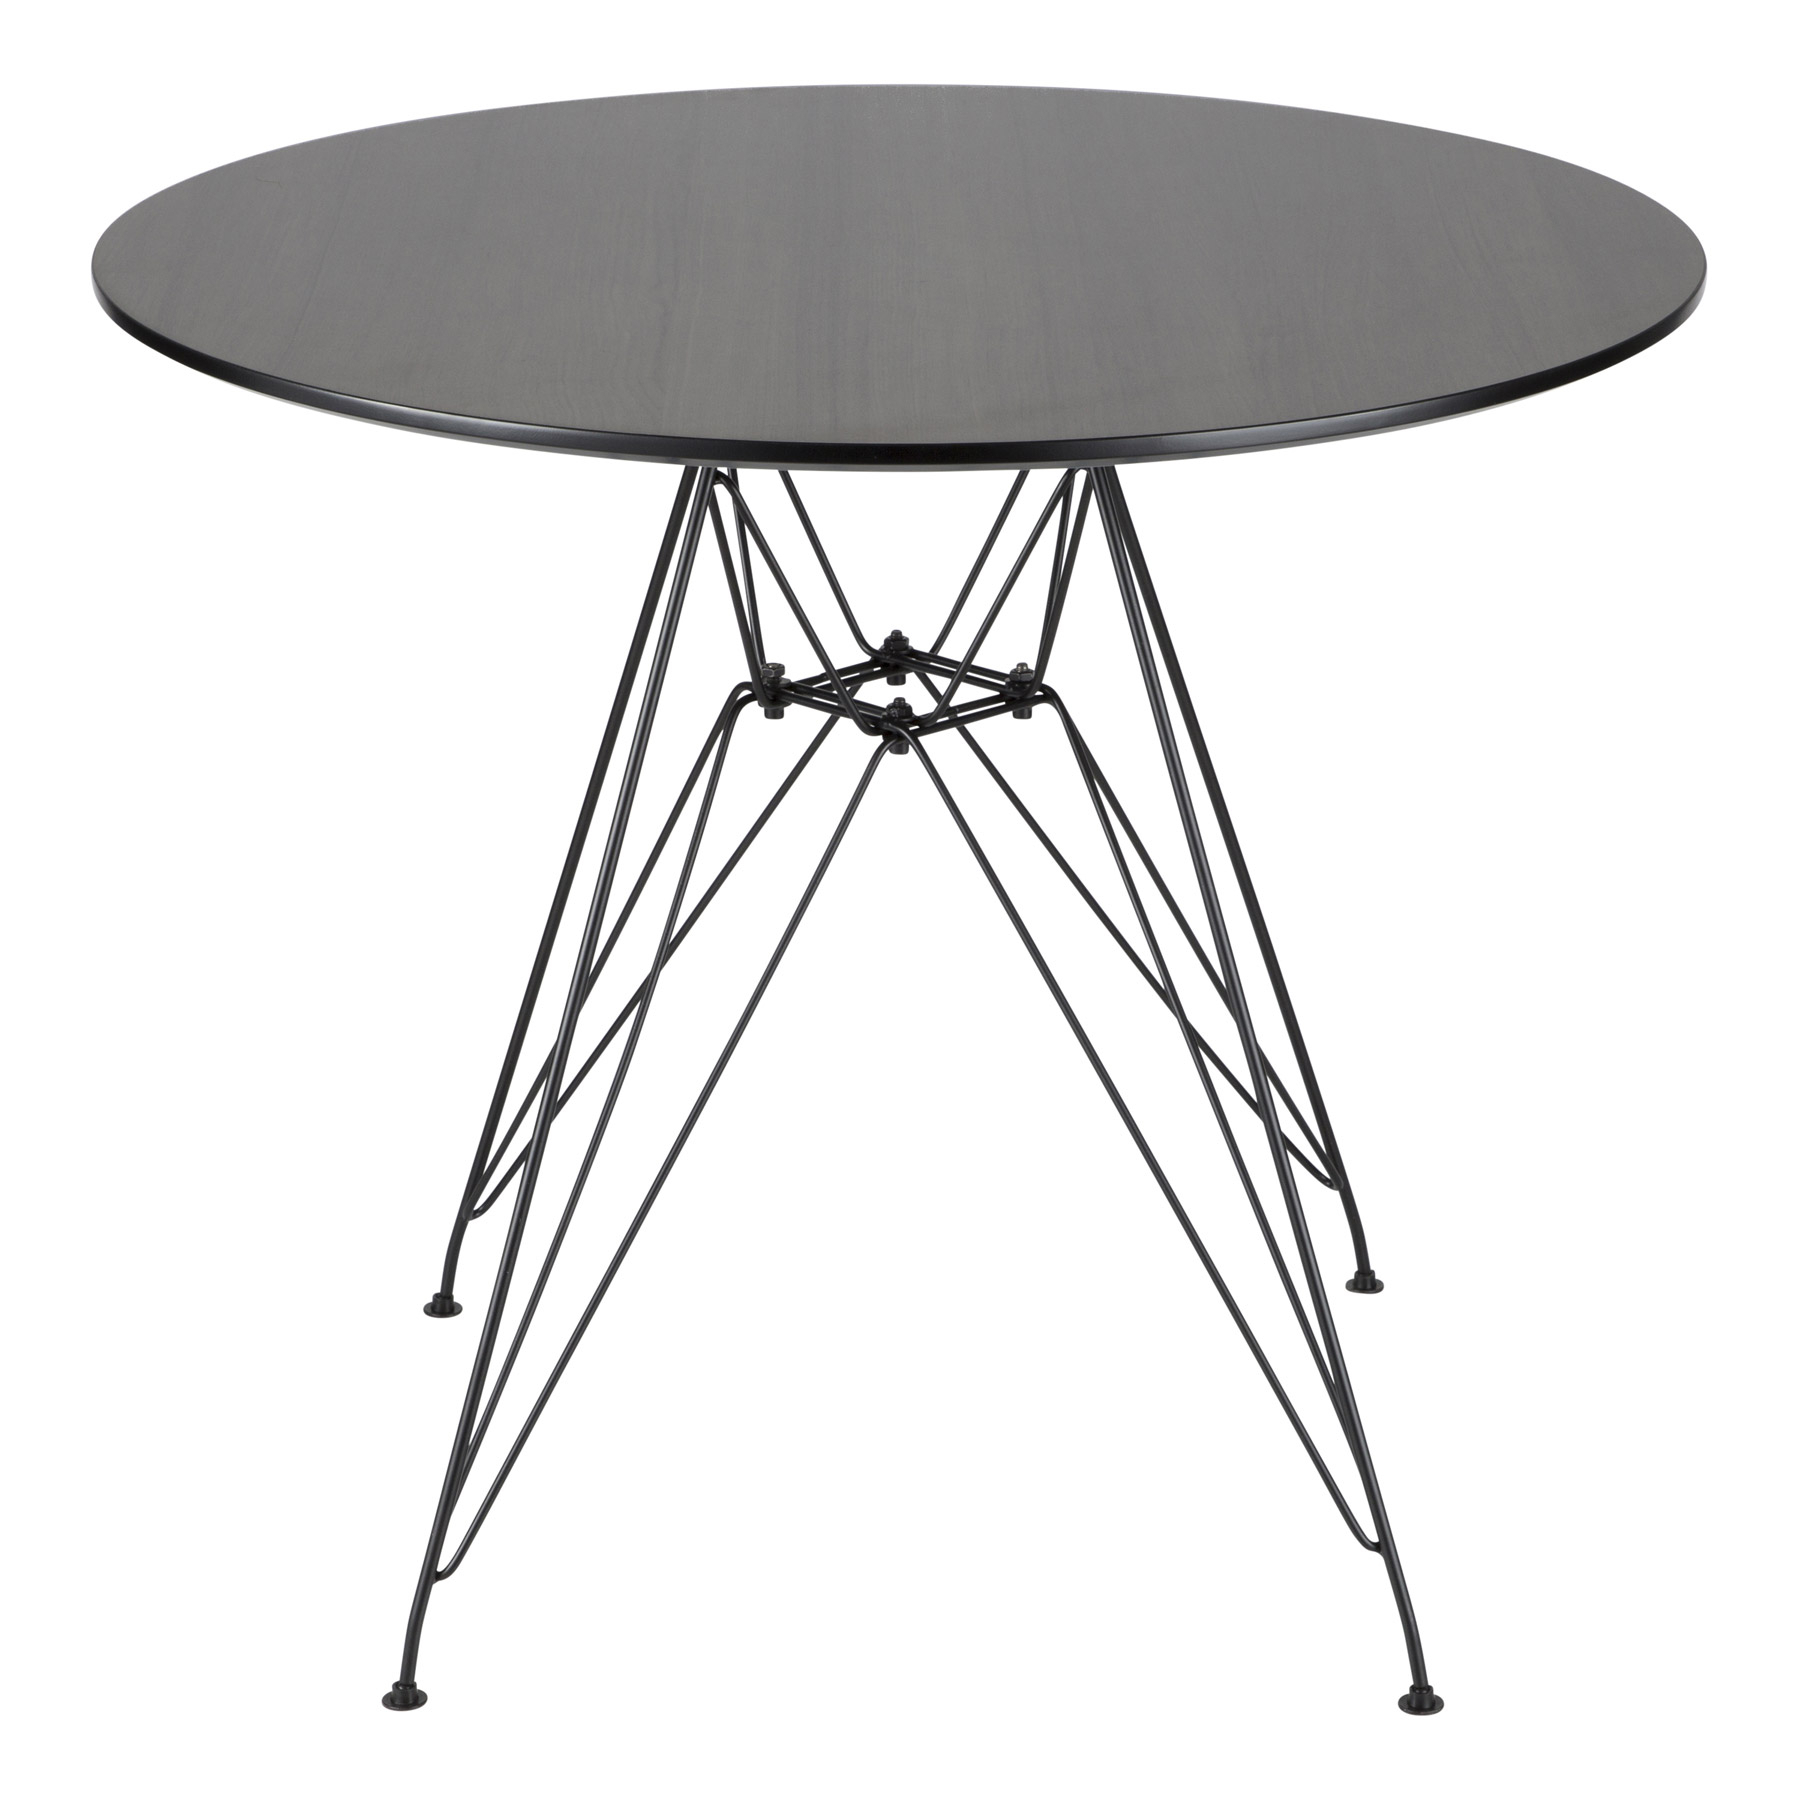 Best and Newest Avery Round Dining Tables in Lumisource Dt-Avryrd Bk+Wl Avery Round Dining Table